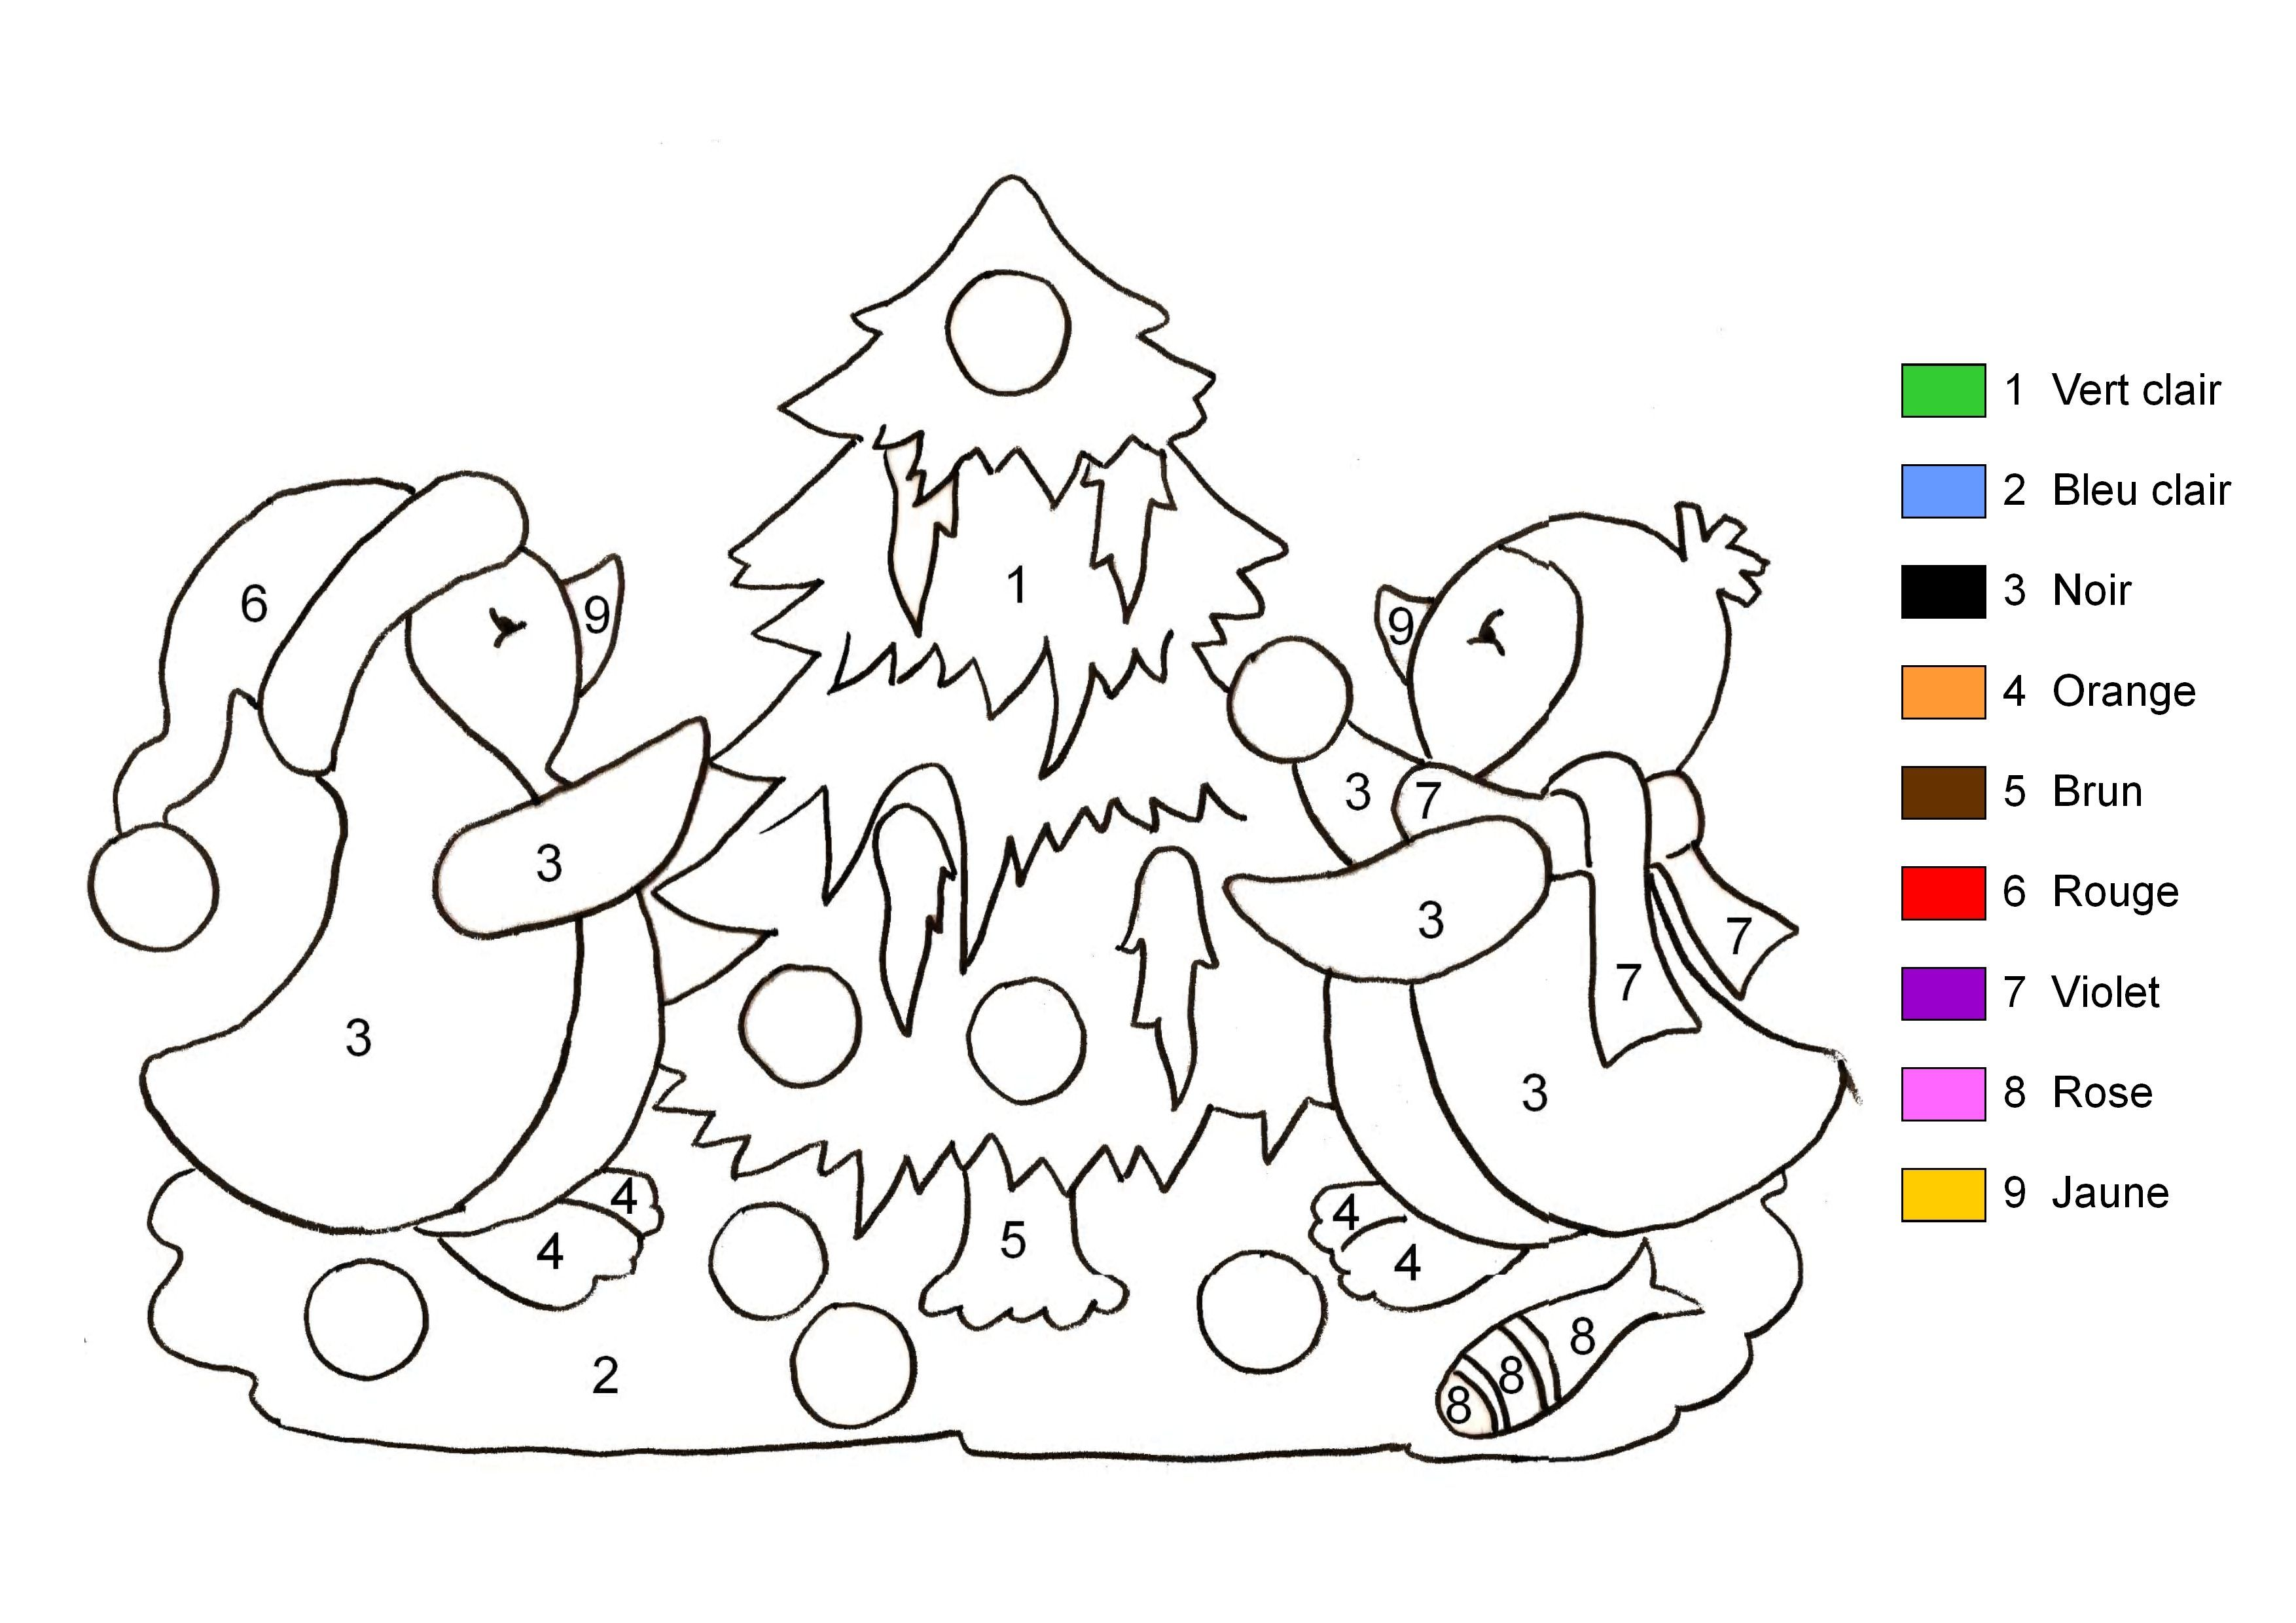 Impressionnant Image Coloriage Noel